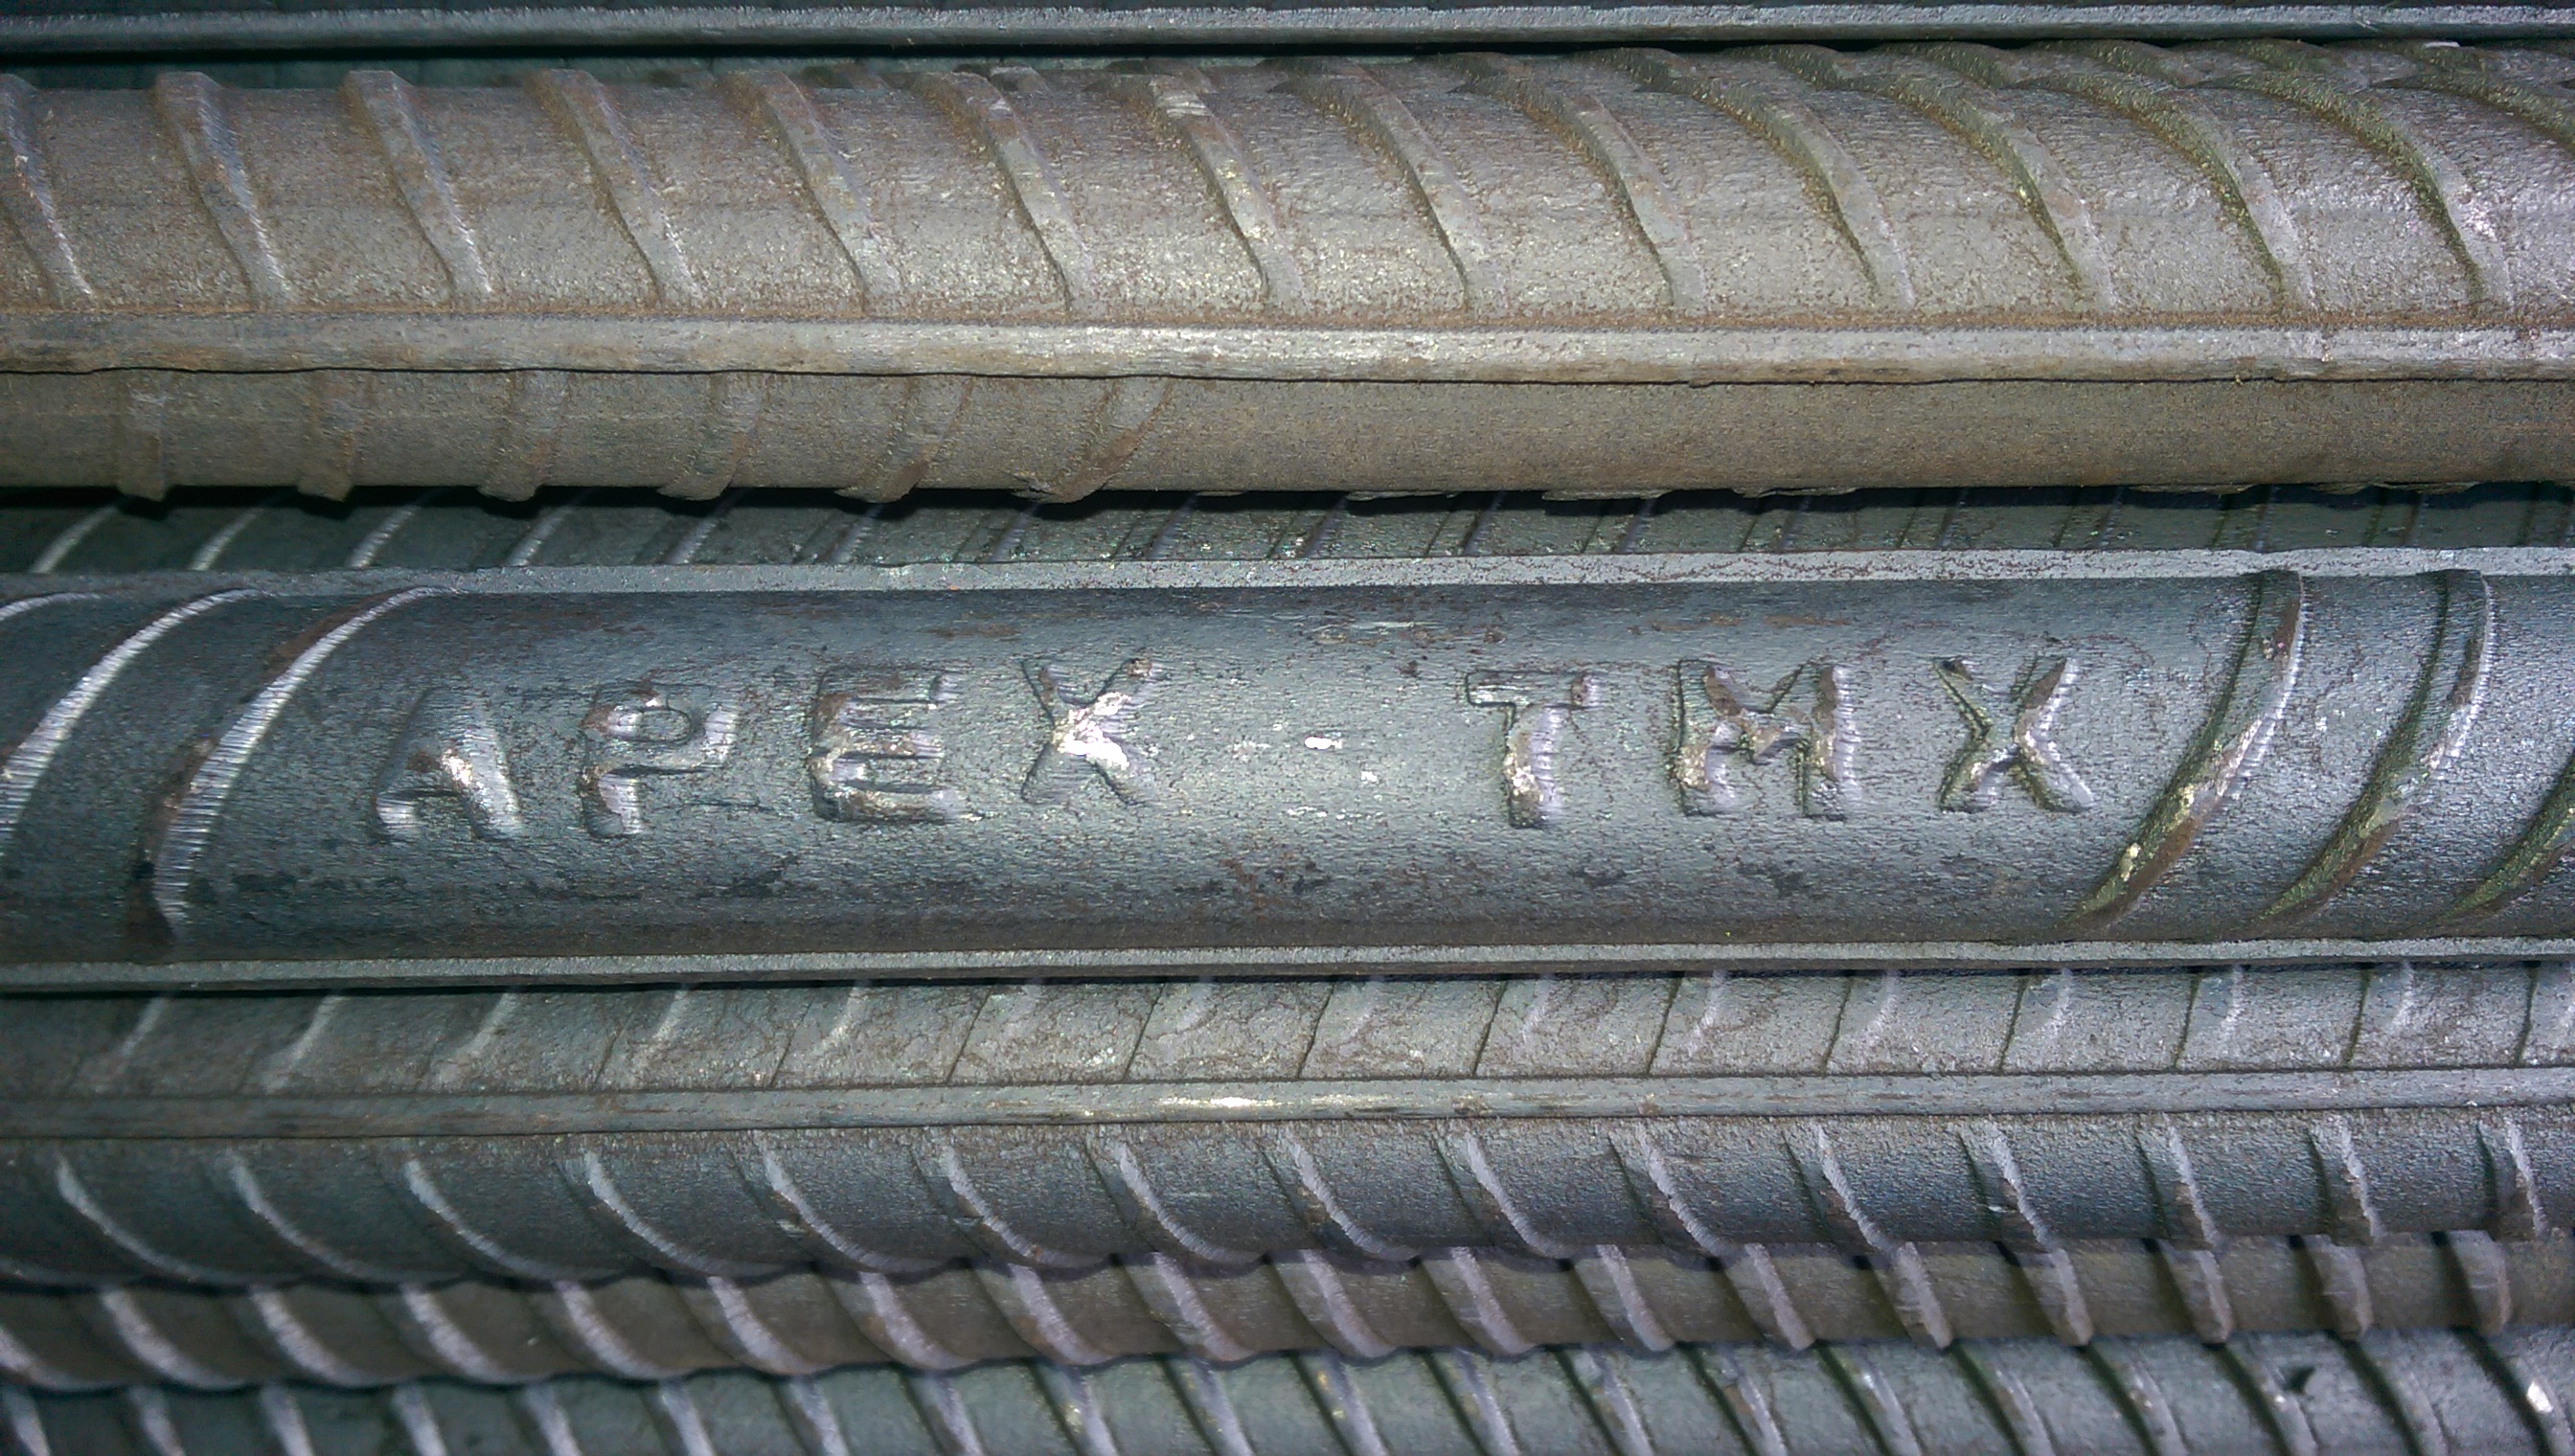 Apex TMX Deformed Steel Bars